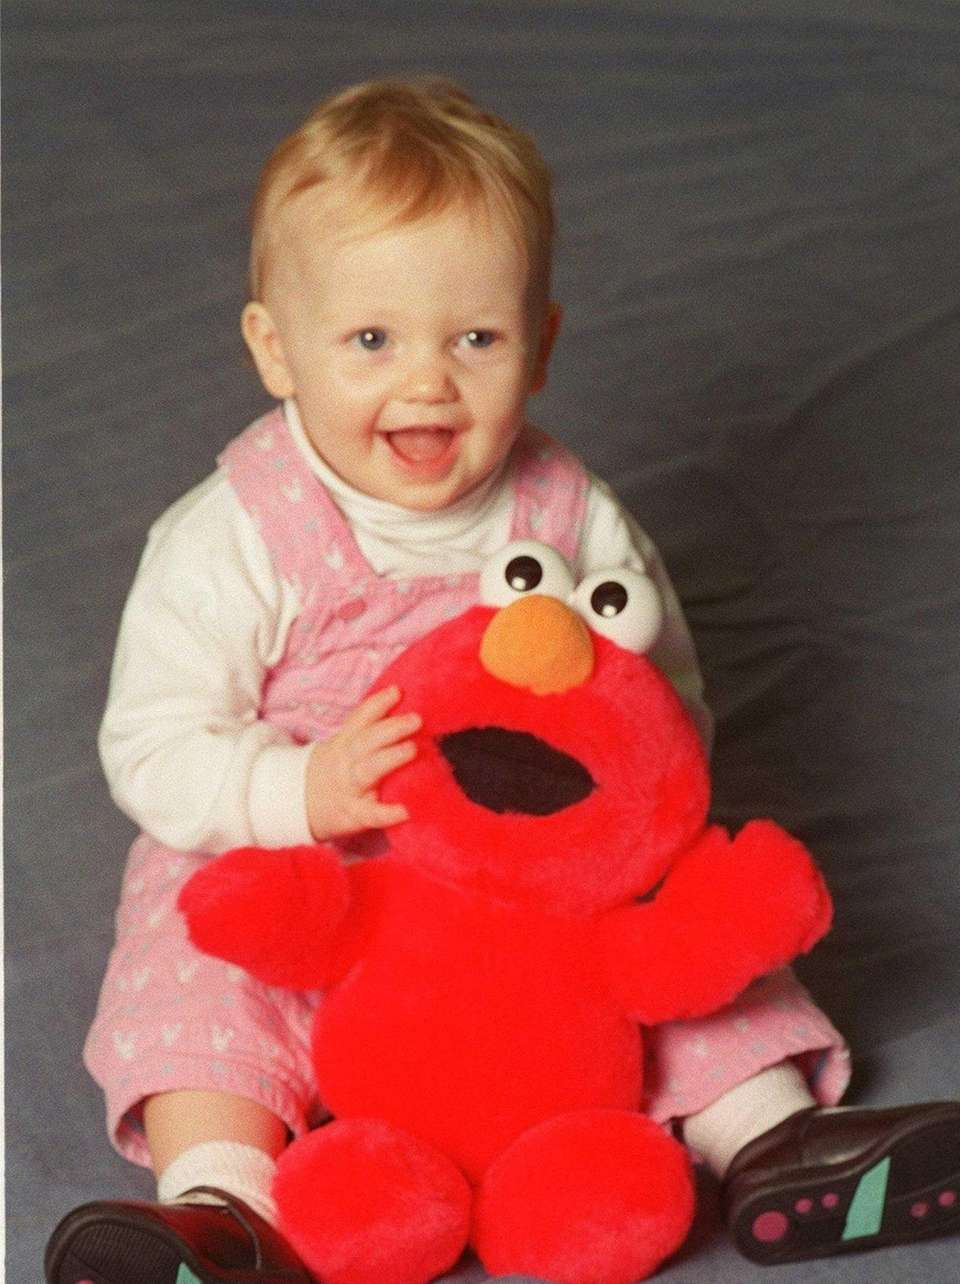 Tyco's Tickle Me Elmo, a stuffed animal with